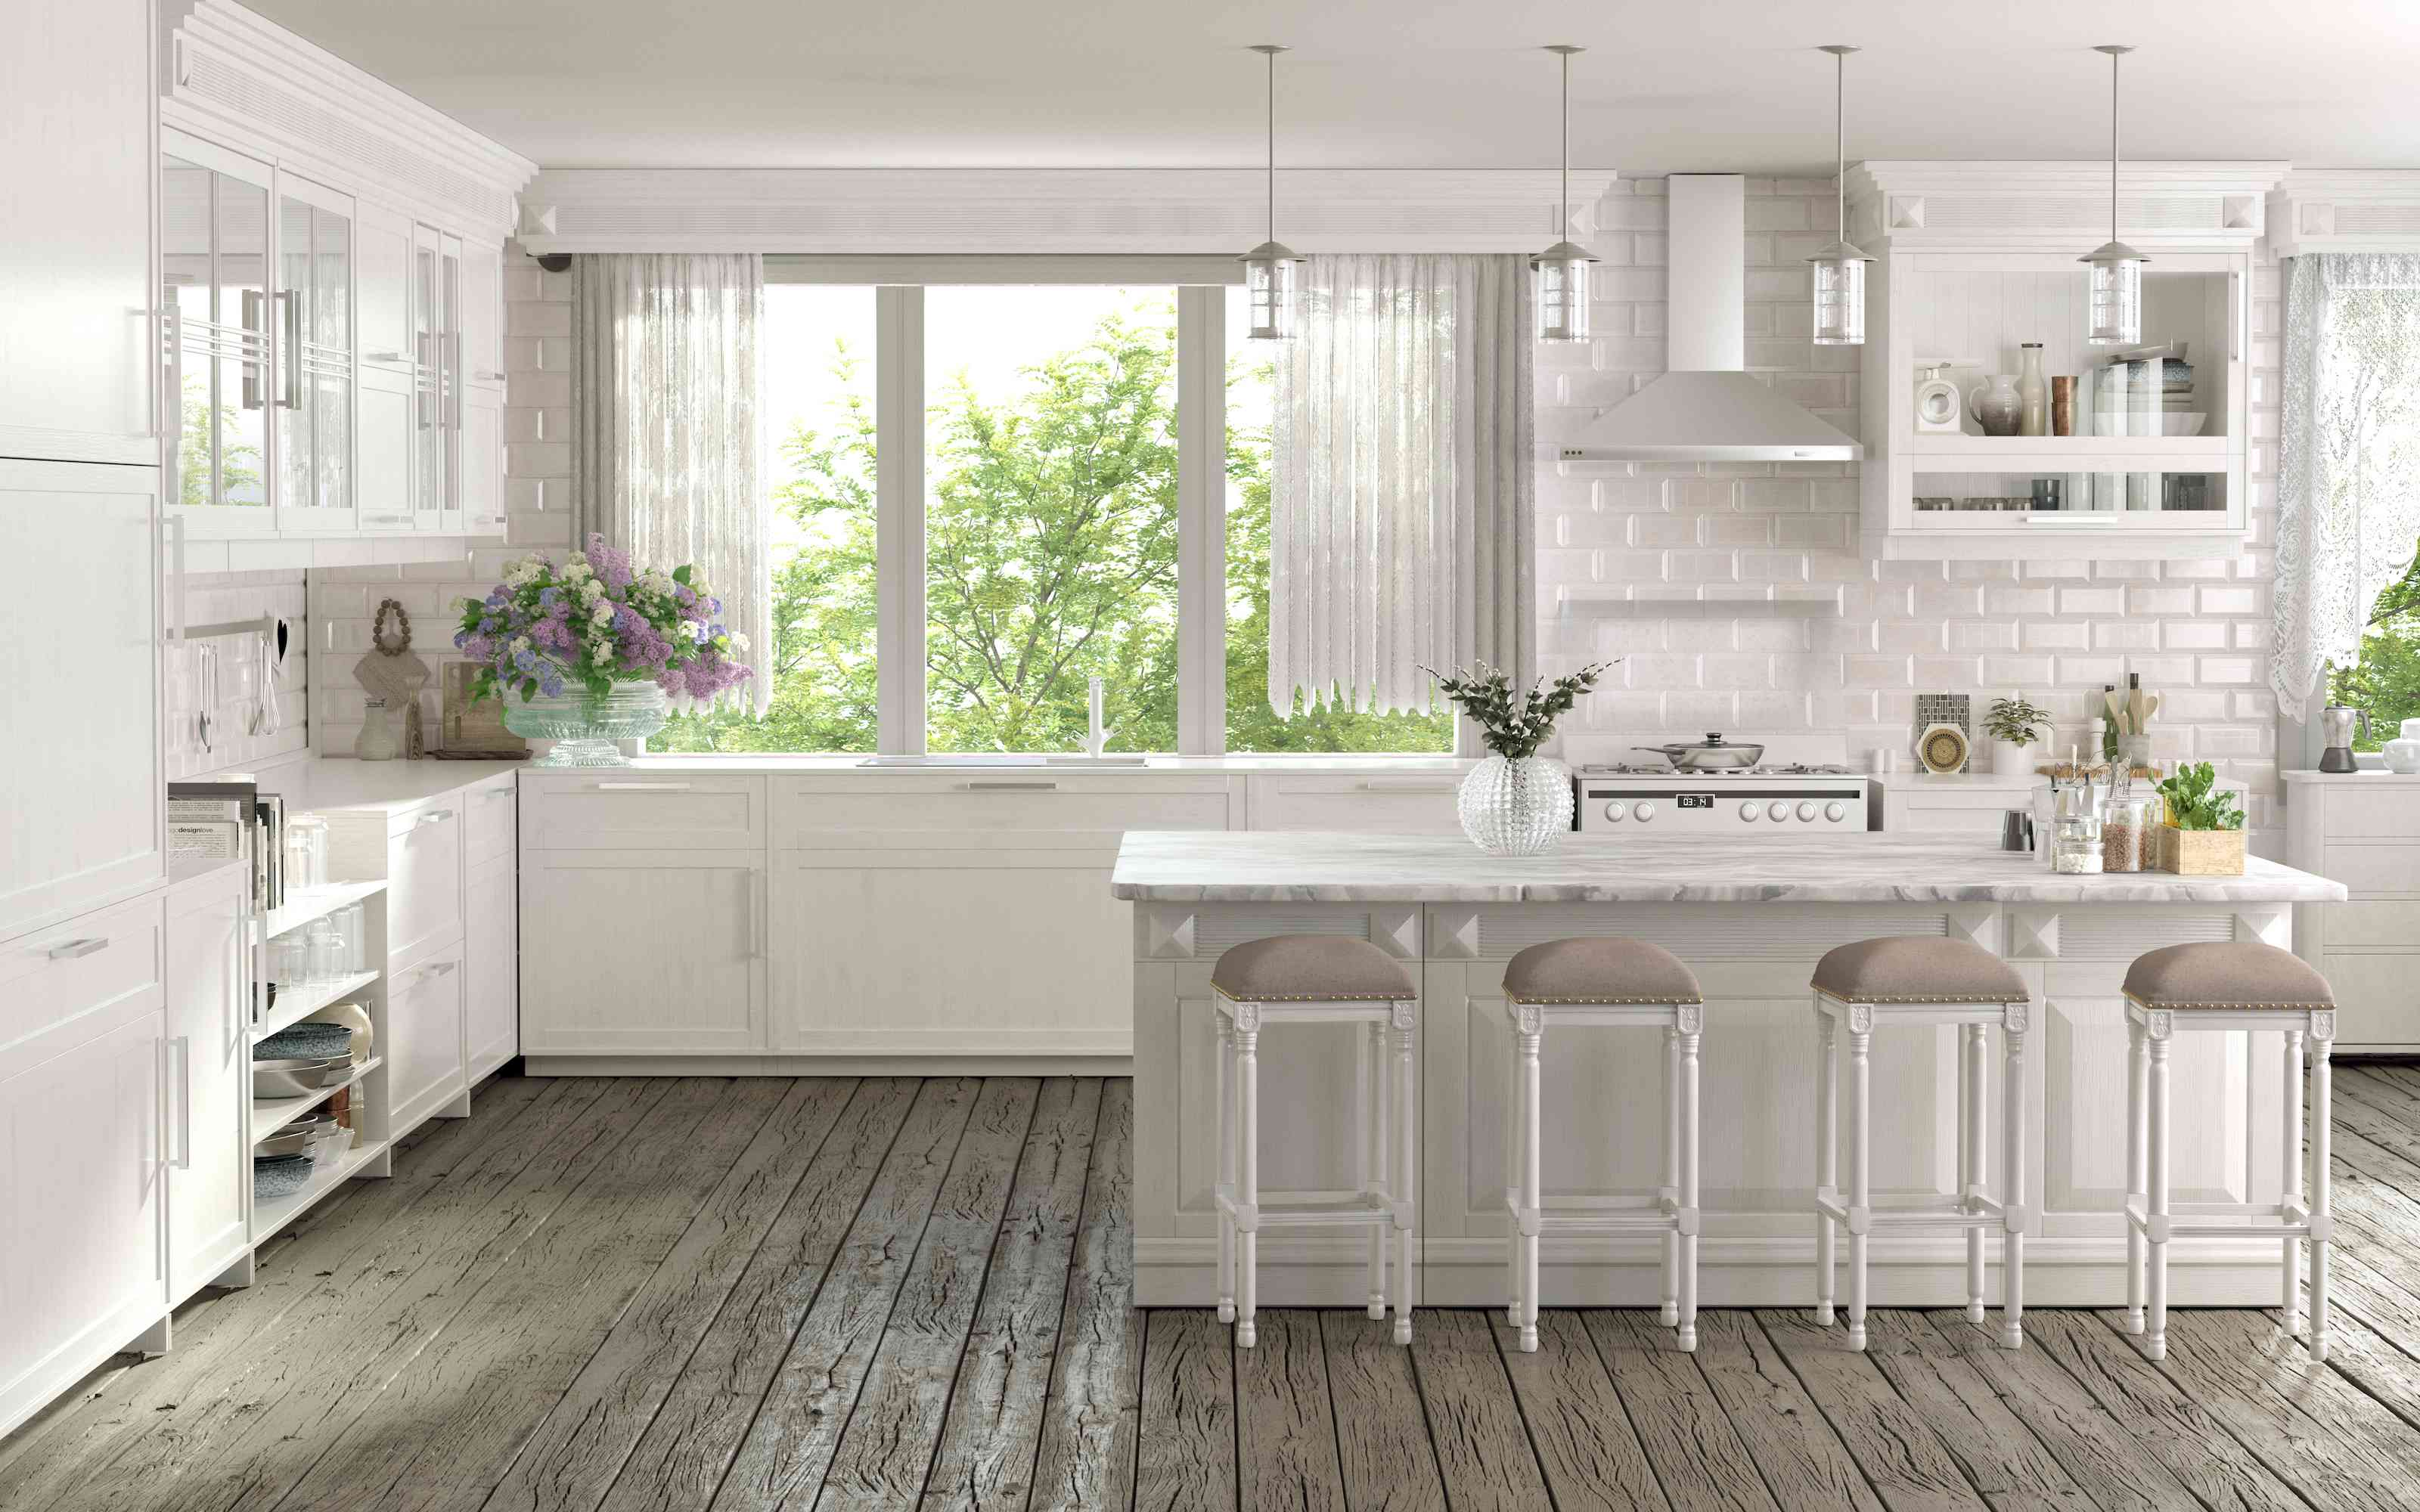 White kitchen with a center island and stools